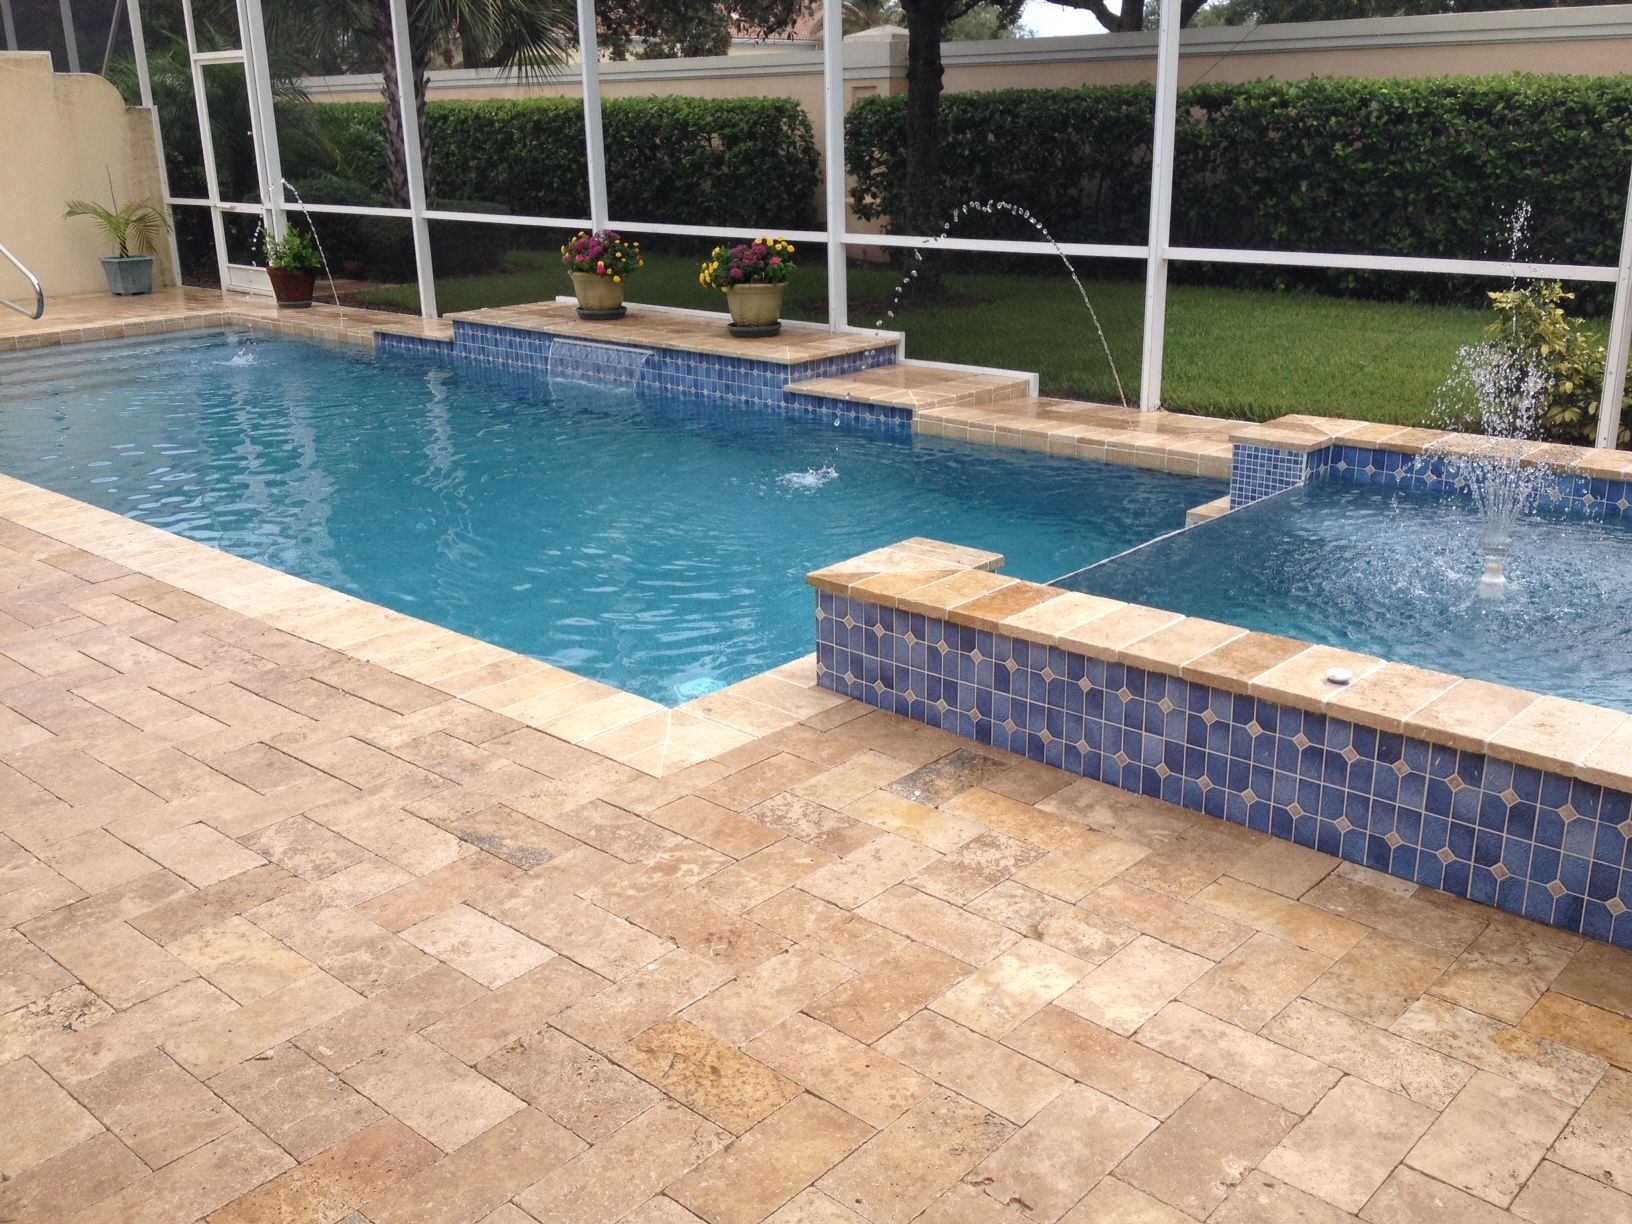 Sealing exposed aggregate pool deck - Honed Ivory Travertine Pavers Pool Deck Natural Ivory Travertine Pavers Two Level Small Swimming Pool Flowers